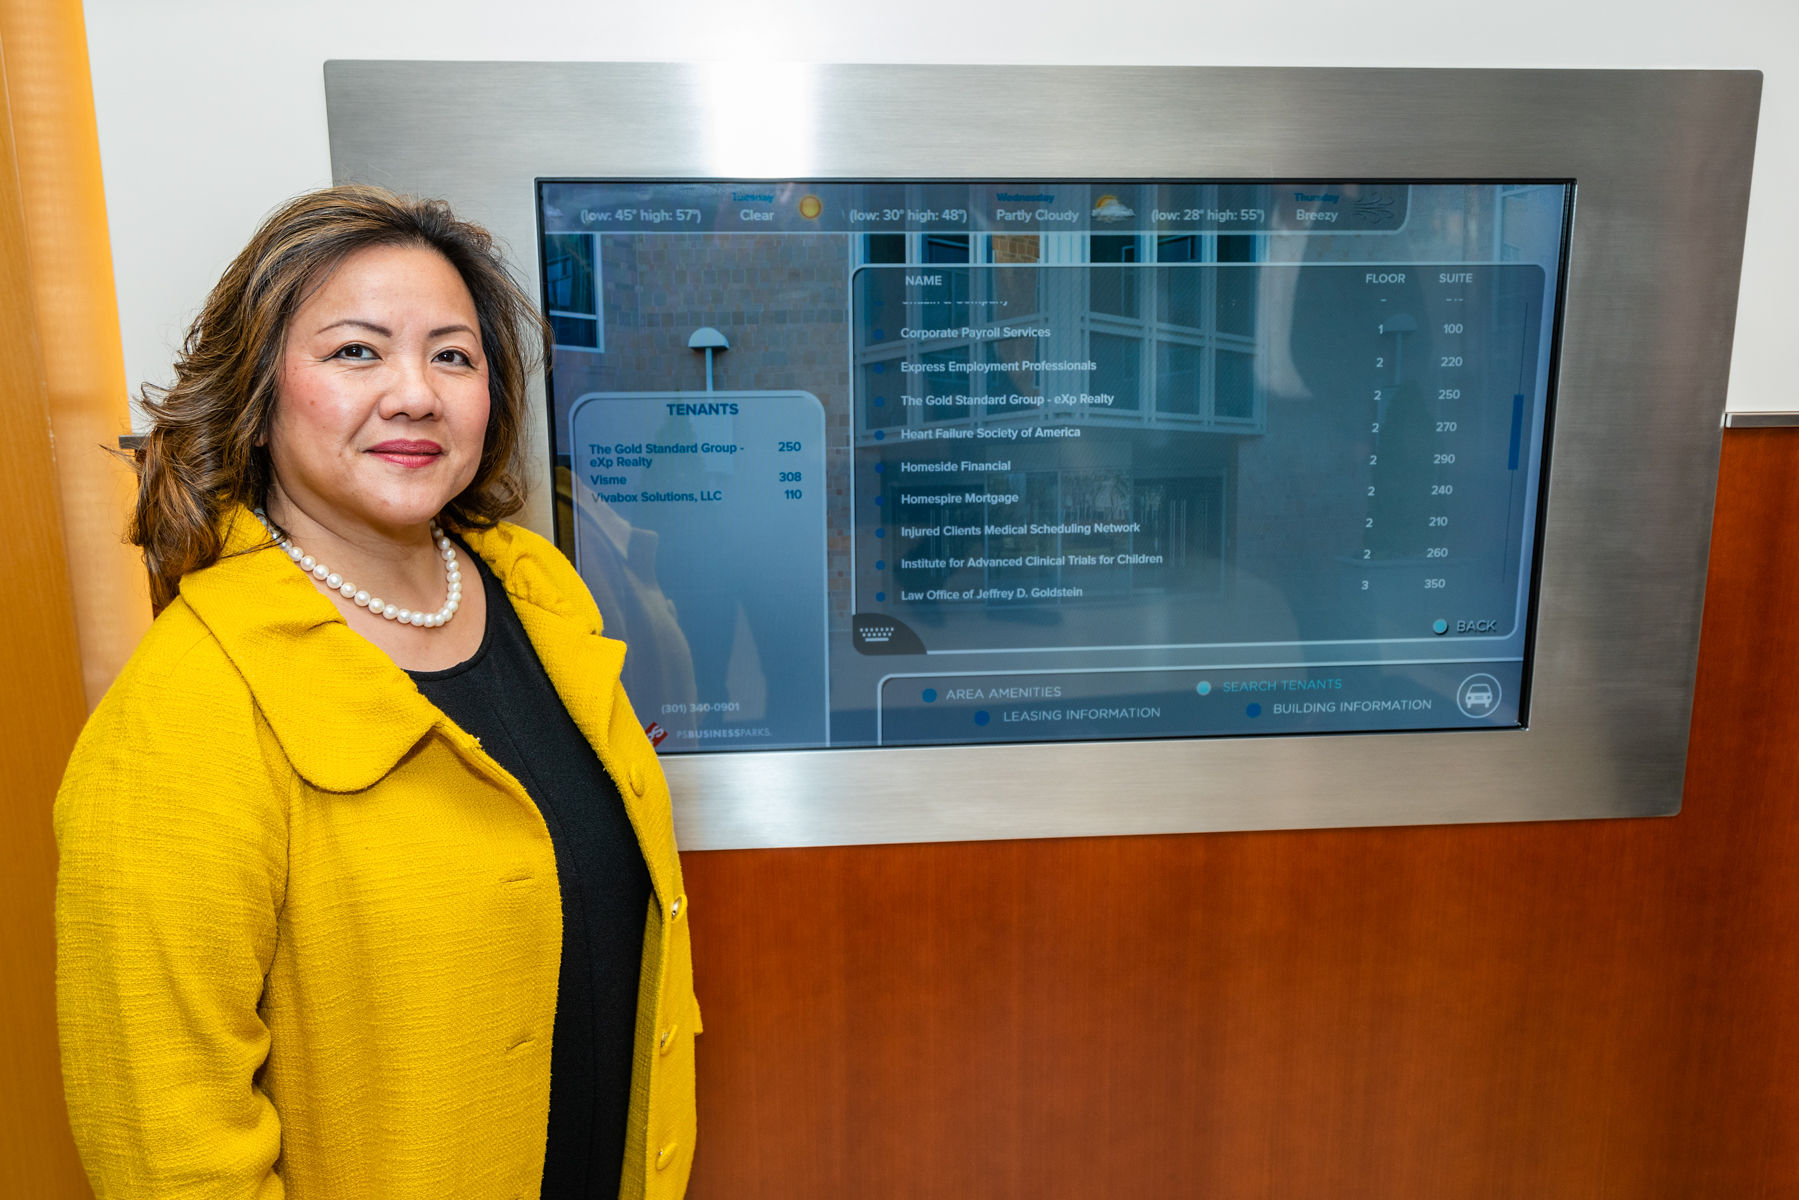 Tina Cheung and The Gold Standard Group with eXp Realty reviews | 9211 Corporate Blvd - Rockville MD